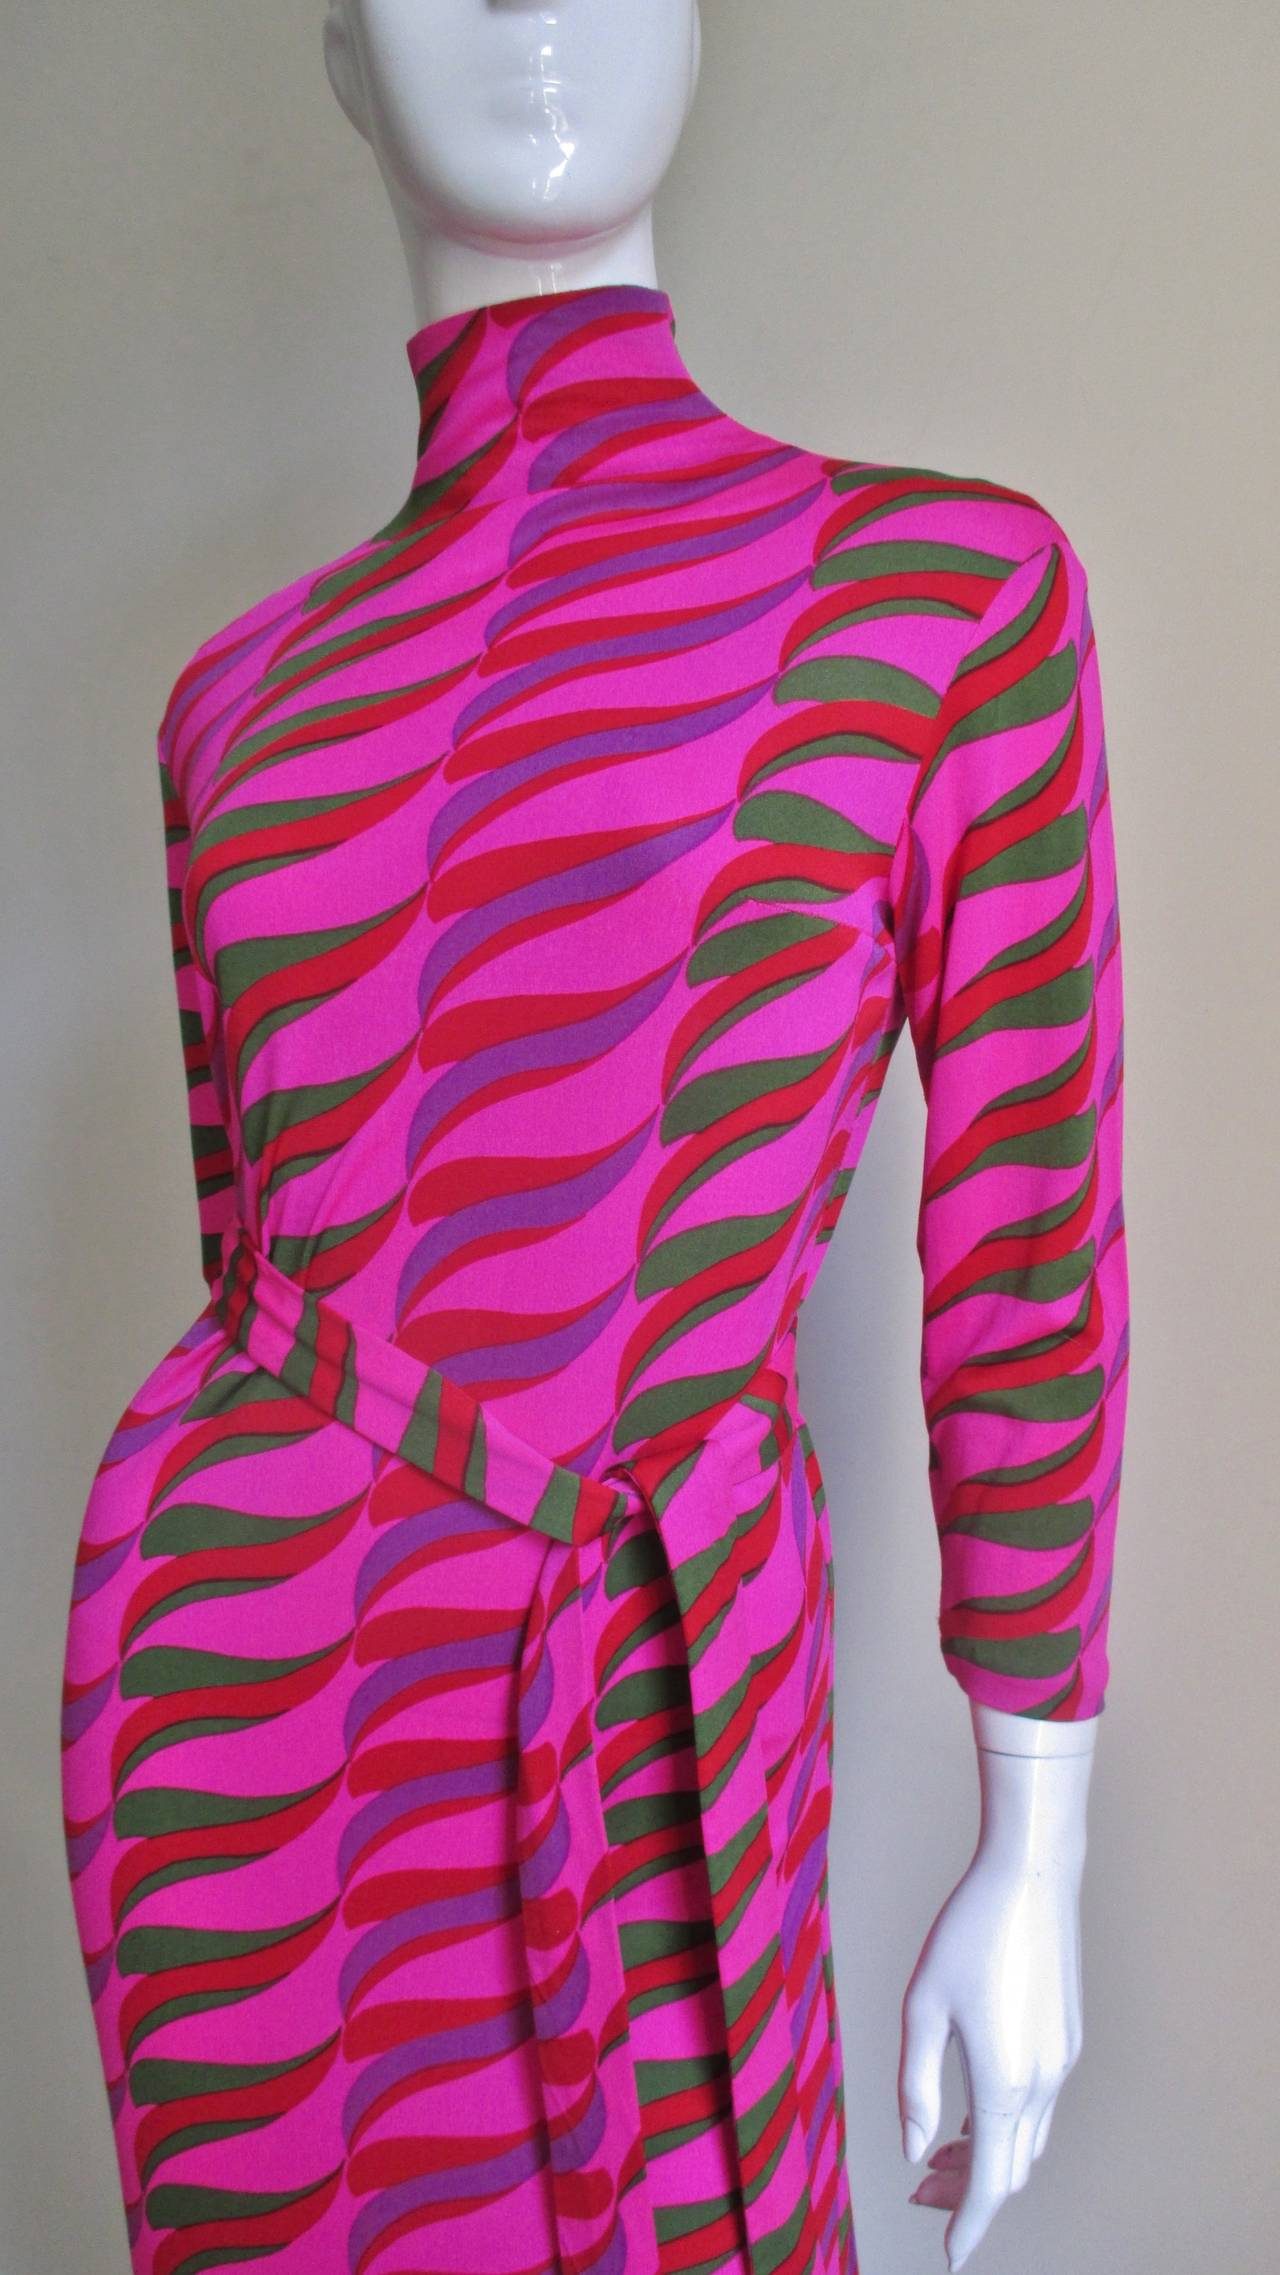 A vibrant pink silk knit long belted dress from La Mendola.  Simple full length sheath with a stand up collar in an abstract pattern of green, purple, red on a bright pink background.  The back closes with a length of self covered buttons and silk